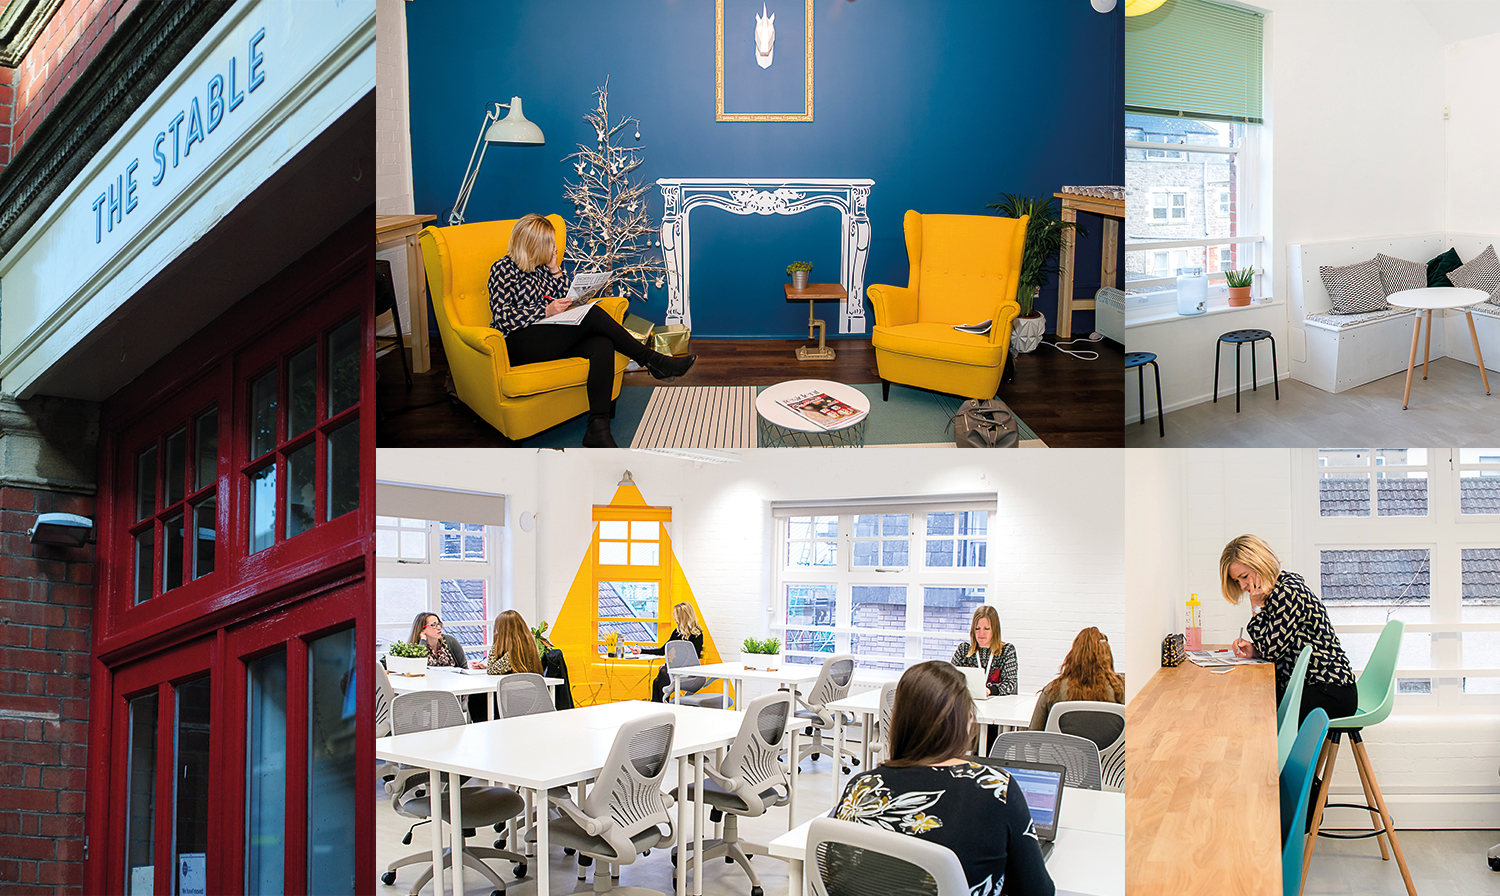 The Stable, A Co-working space based in the centre of Weston-super-Mare